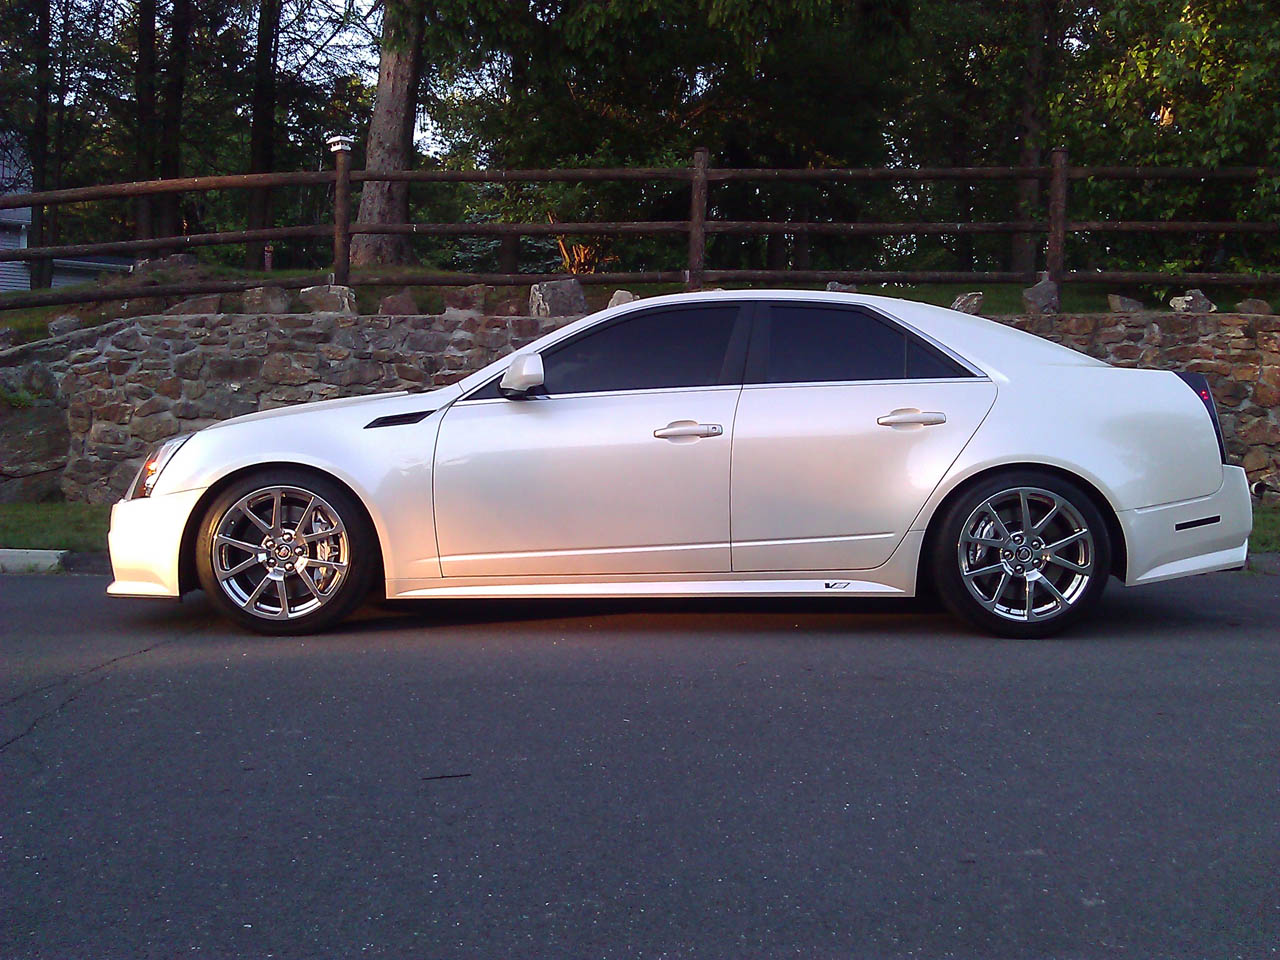 2009 white cadillac cts v pictures mods upgrades. Black Bedroom Furniture Sets. Home Design Ideas